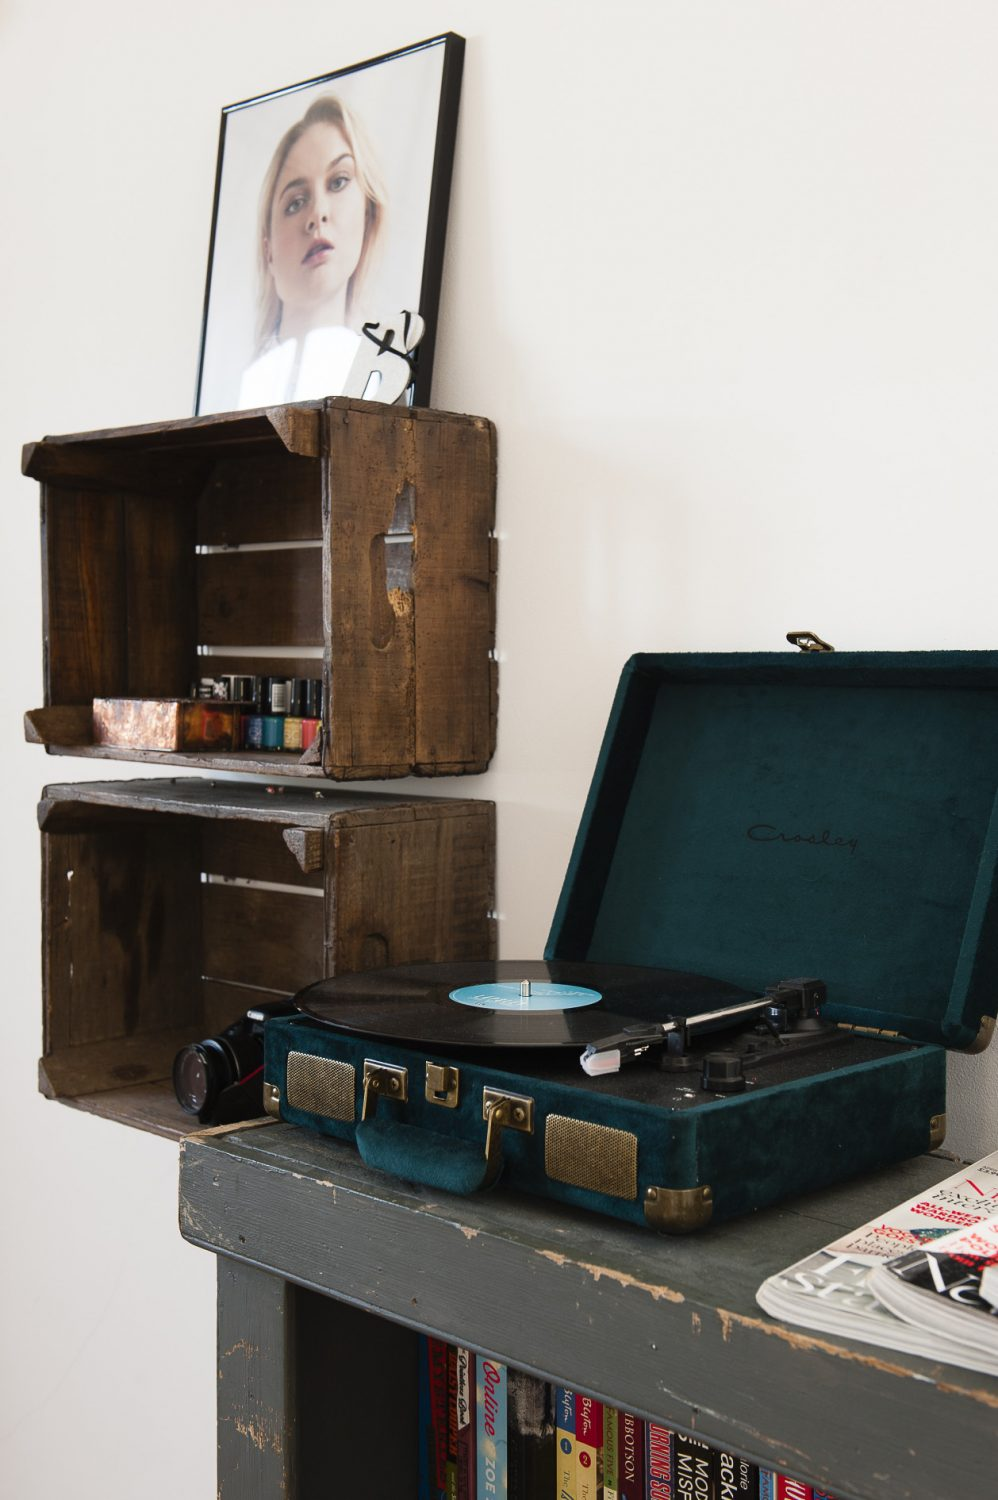 In their daughter's bedroom, Stuart created shelves out of old apple crates. Her vintage turntable sits on an old bookshelf from Rye vintage market